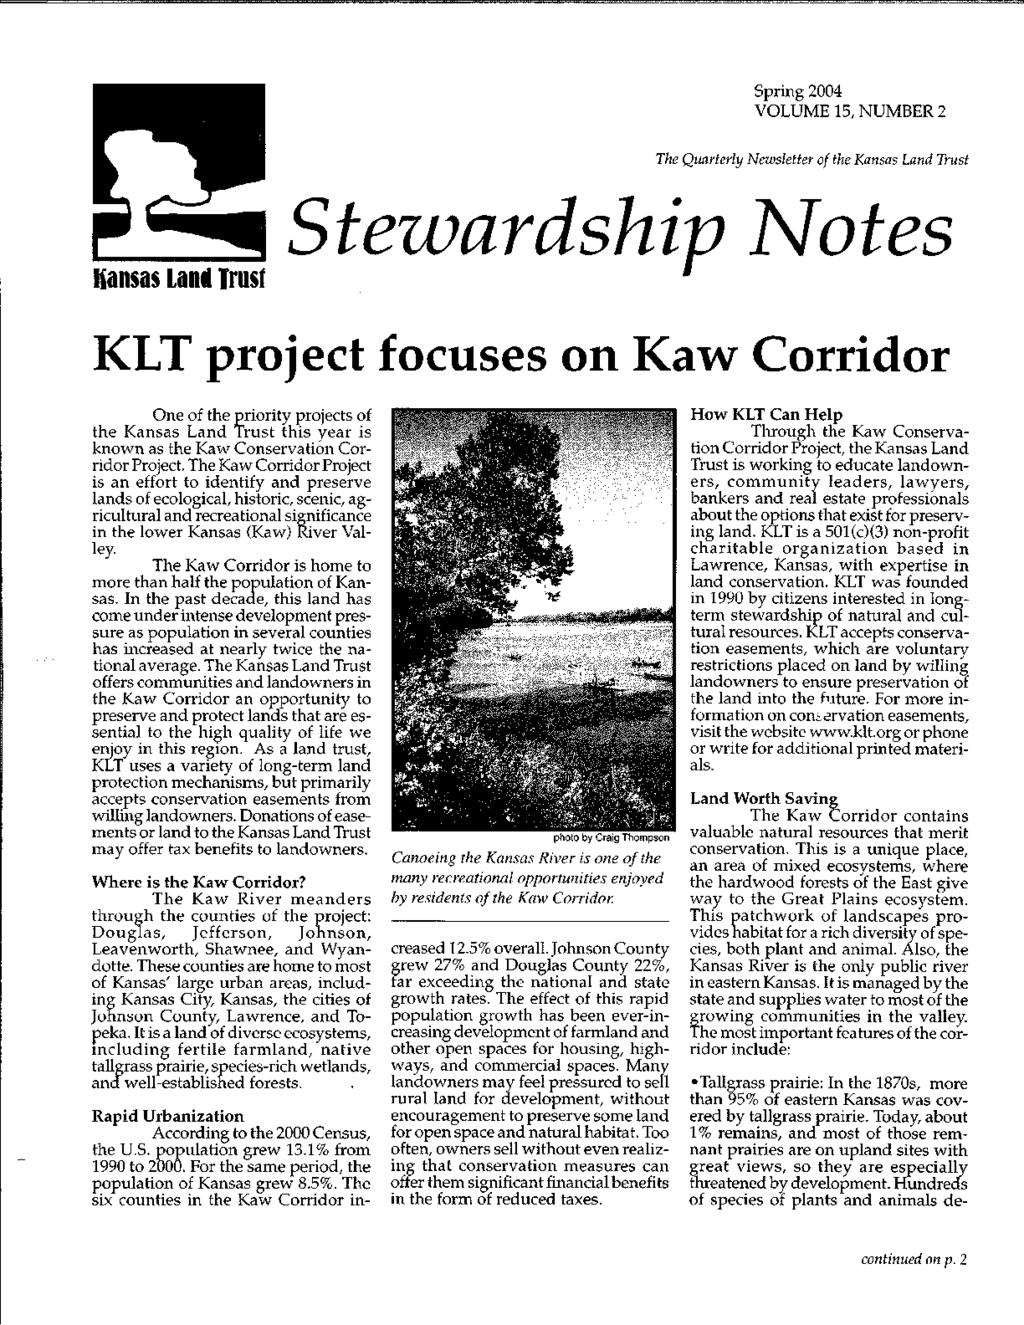 Spring 2004 VOLUME IS, NUMBER 2 The Quarterly Newsletter of the Kansas Land Trust Kansas Land Trust StezvardshipfVotes KLT proj ect focuses on Ka~ Corridor One of the priority projects of the Kansas